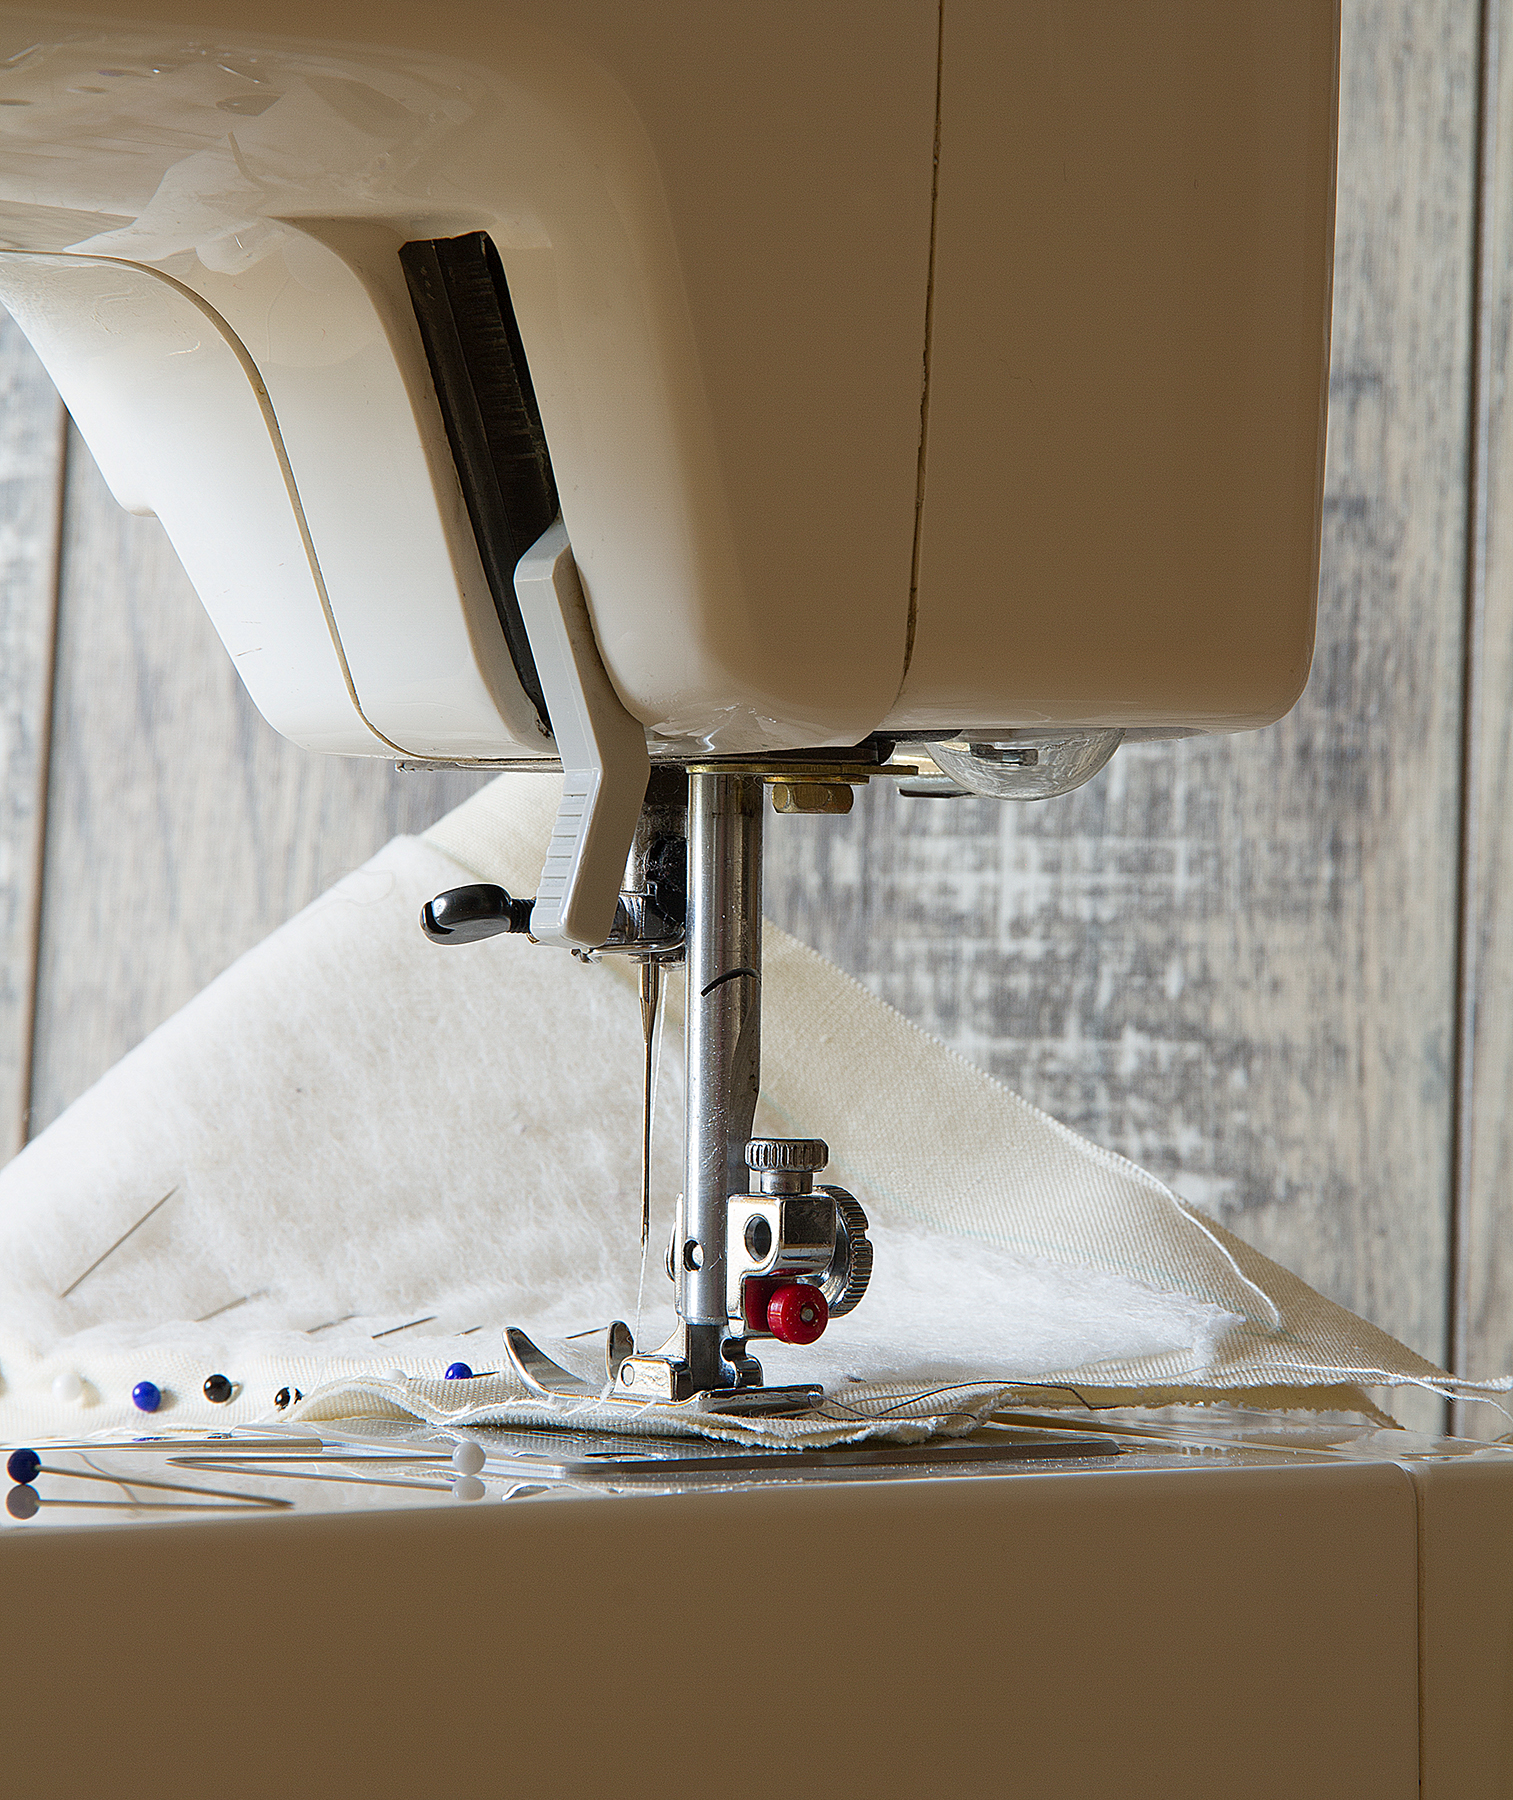 Sewing machine foot with fabric